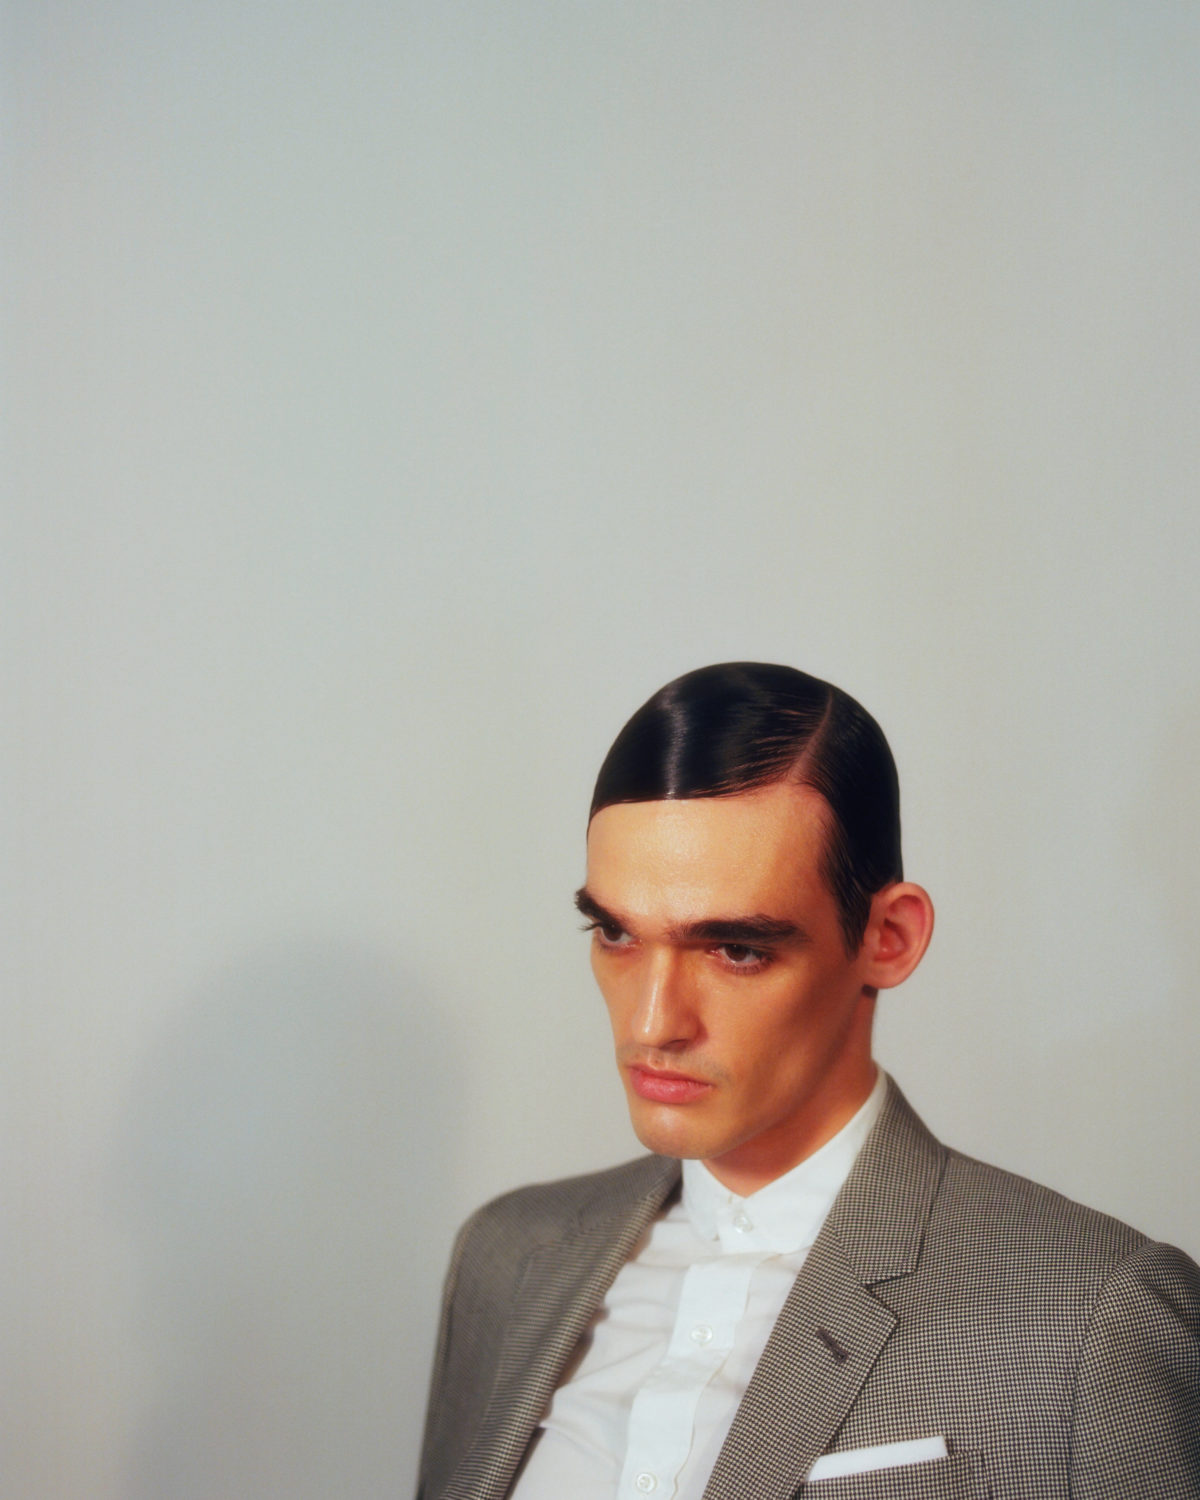 Men at work (c) Celine Bishoff Arthur Mayadoux styled with Thom Browne